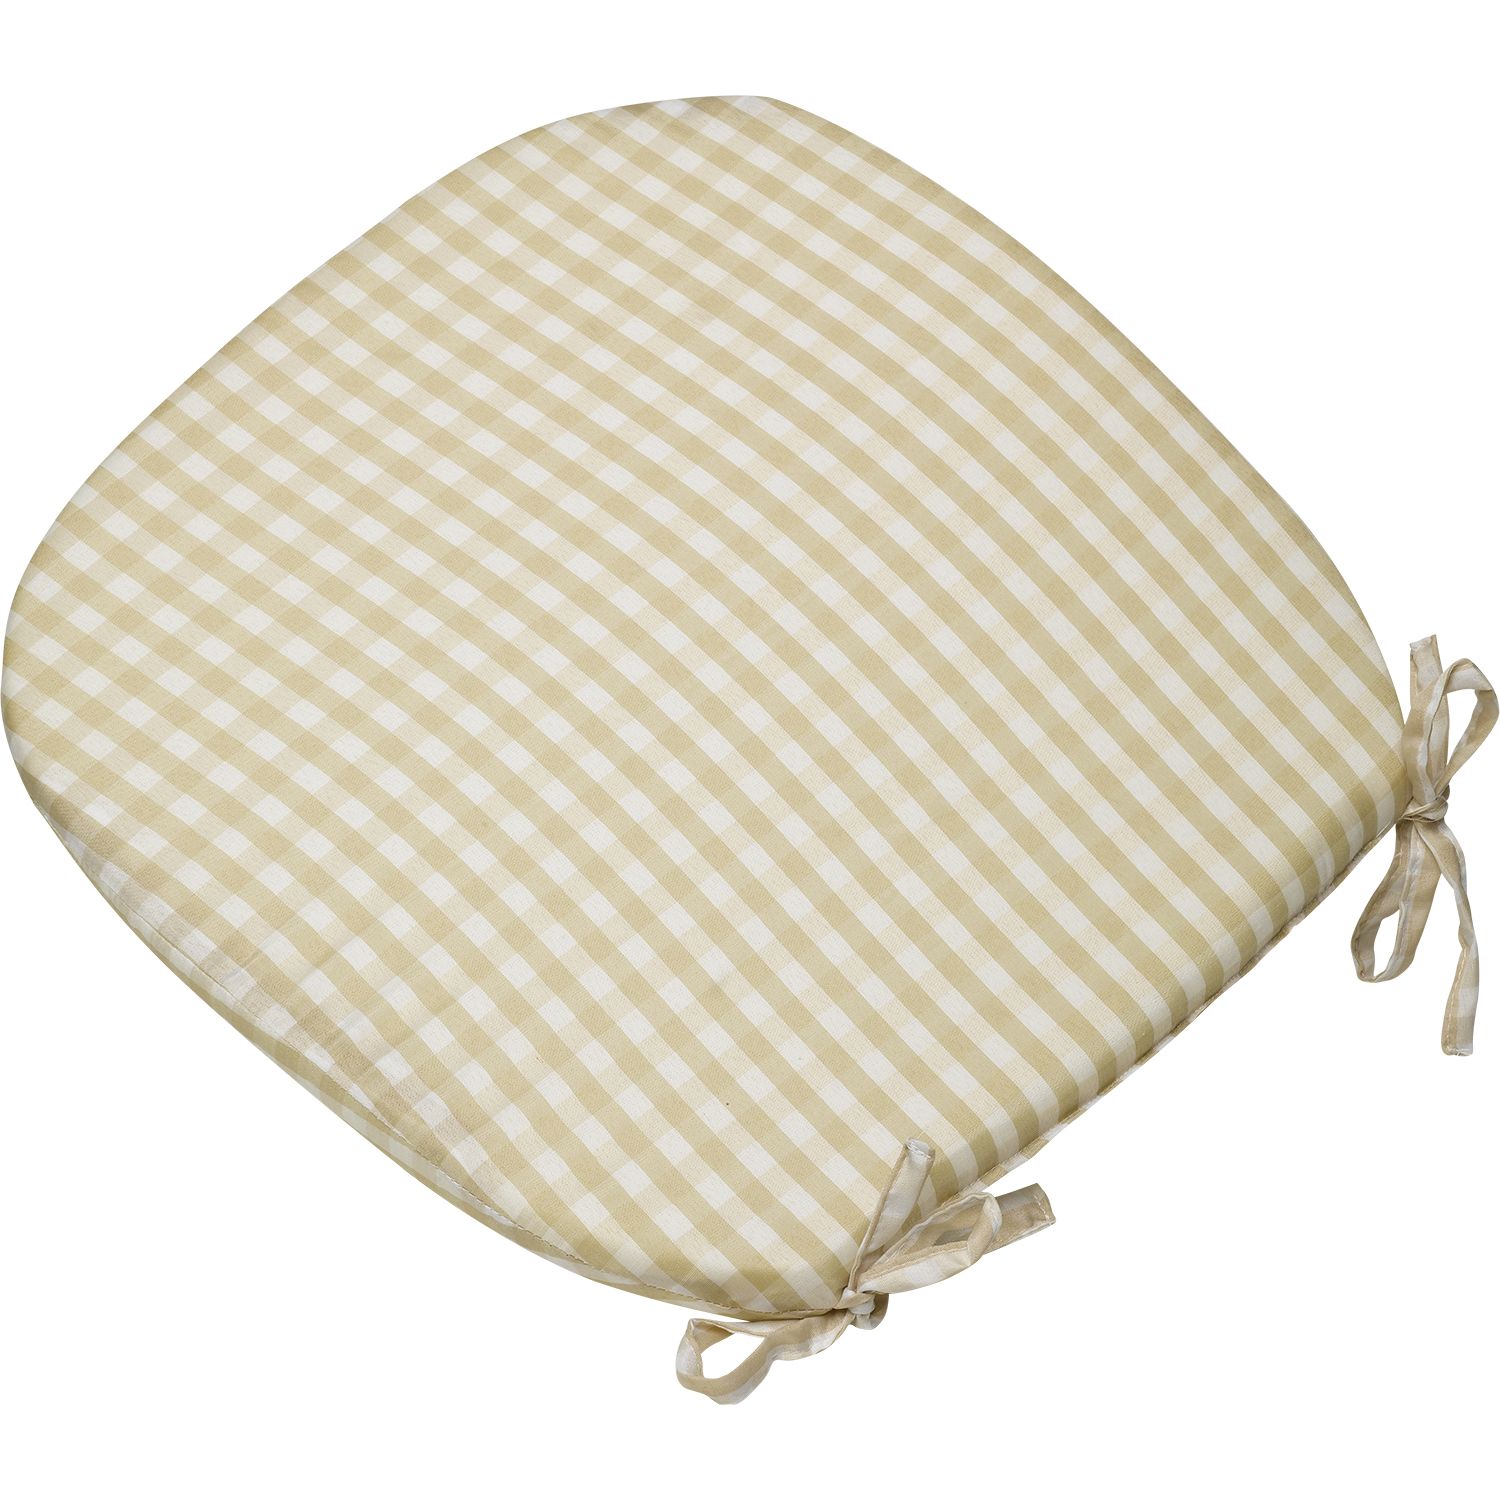 Checked Seatpad Dining Kitchen Garden Chair Seat Cushion Pad Tie Gingham